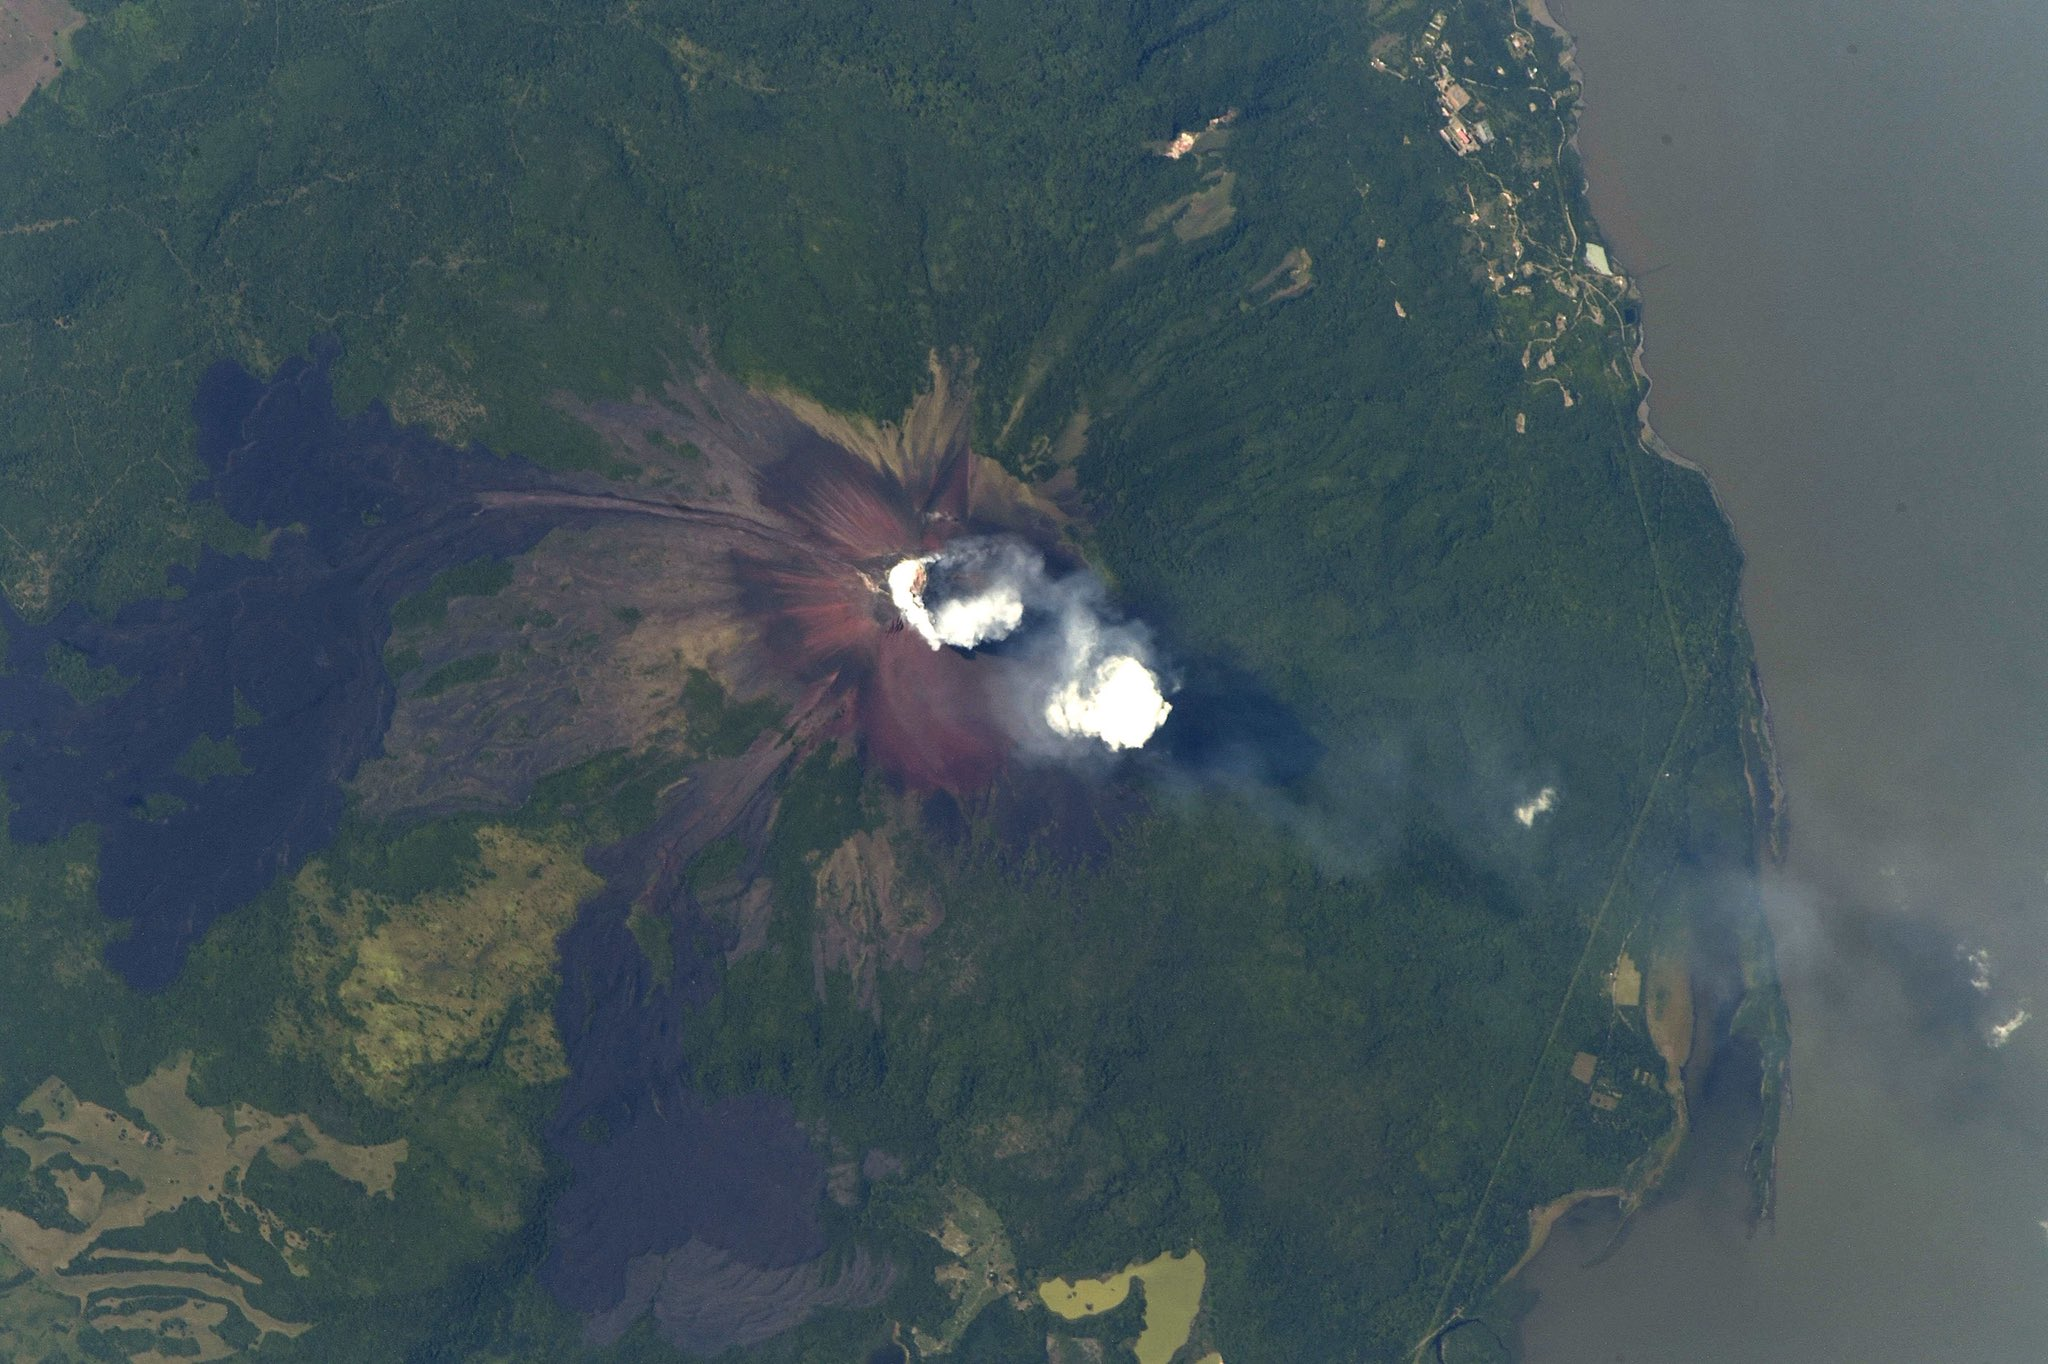 The violent beauty of our dynamic Earth revealed by a volcanic plume alongside Lake Atitl?n in #Guatemala. (Photo & Caption: Ricky Arnold / NASA)